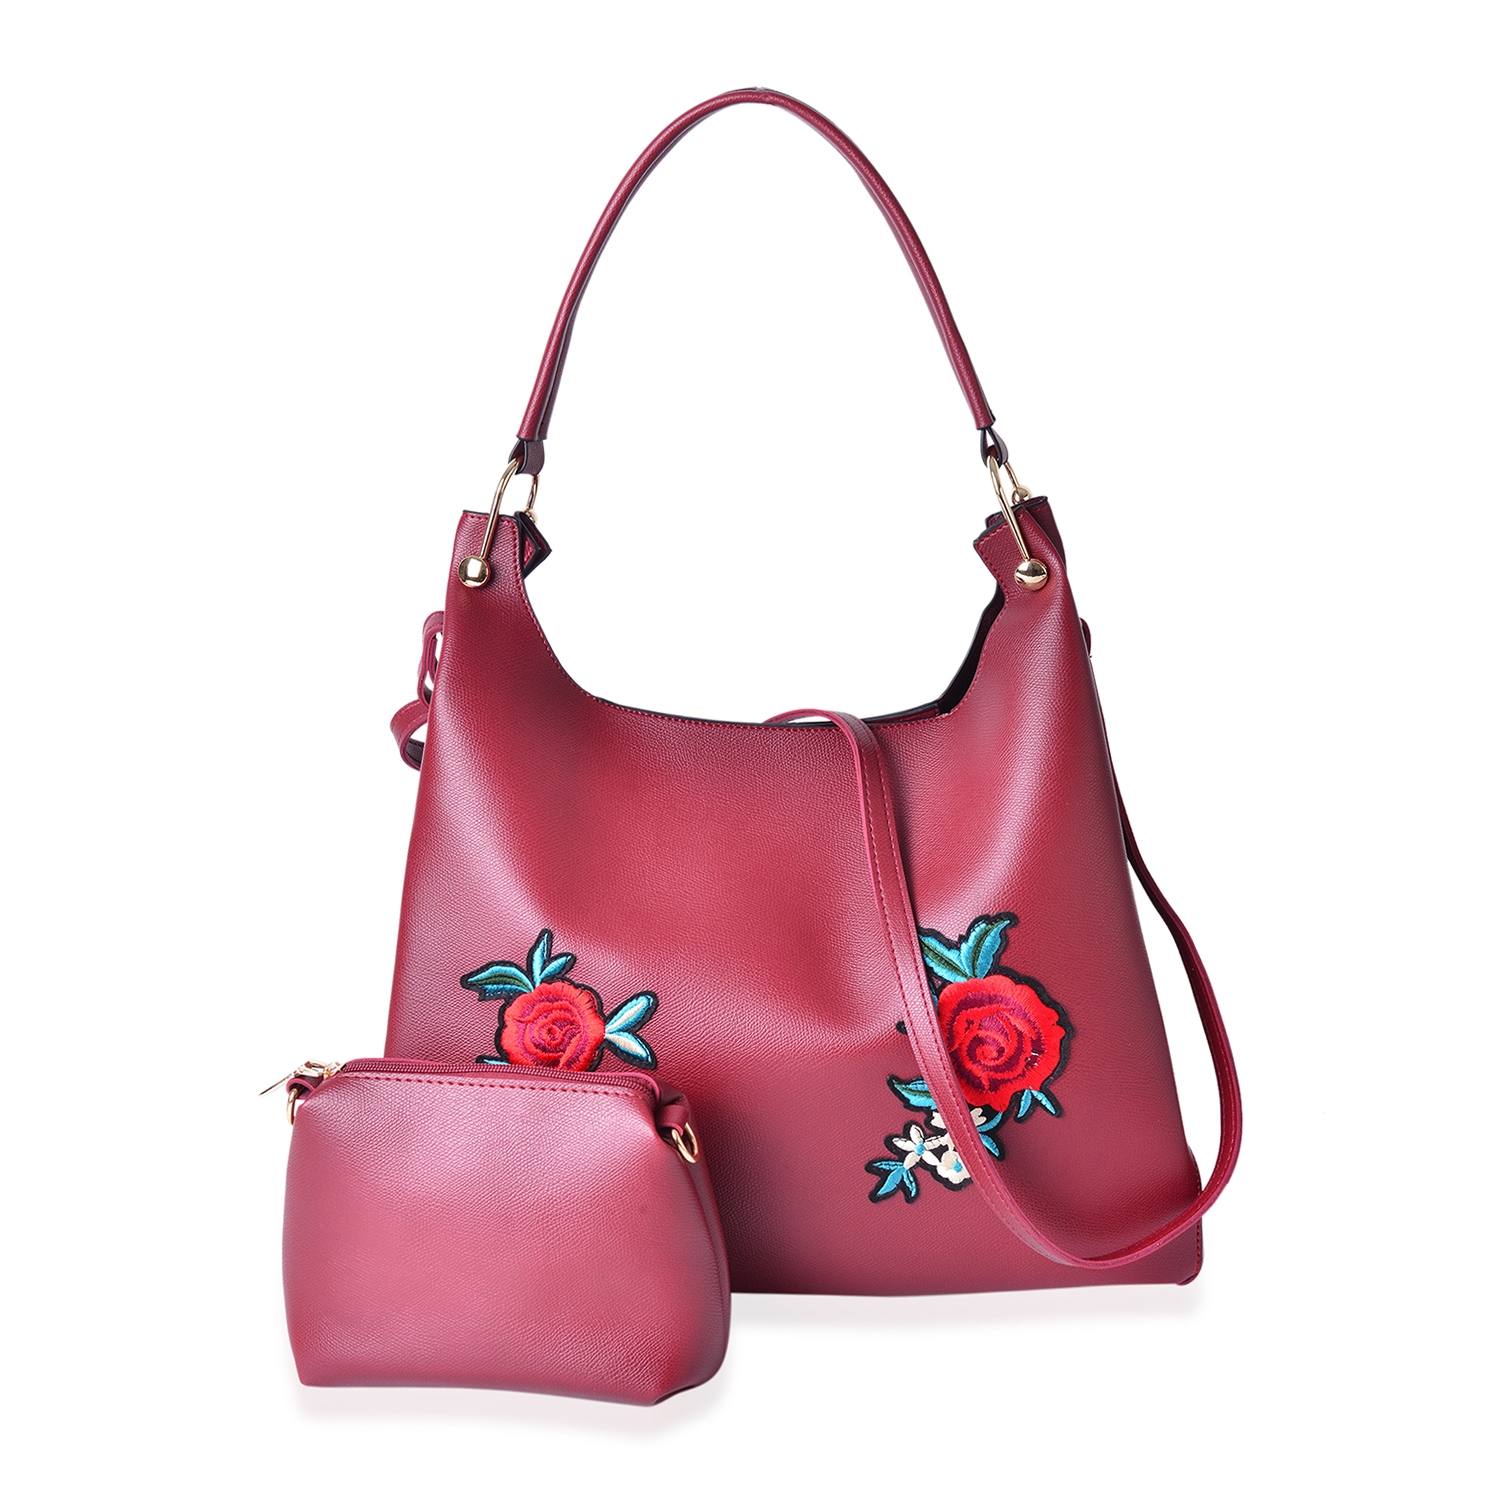 b61fbf8751c Maroon Faux Leather Eye-Catching Floral Embroidery Tote Bag (15x5x12 in)  with Matching Pouch (9x3x6 in) | Shop LC